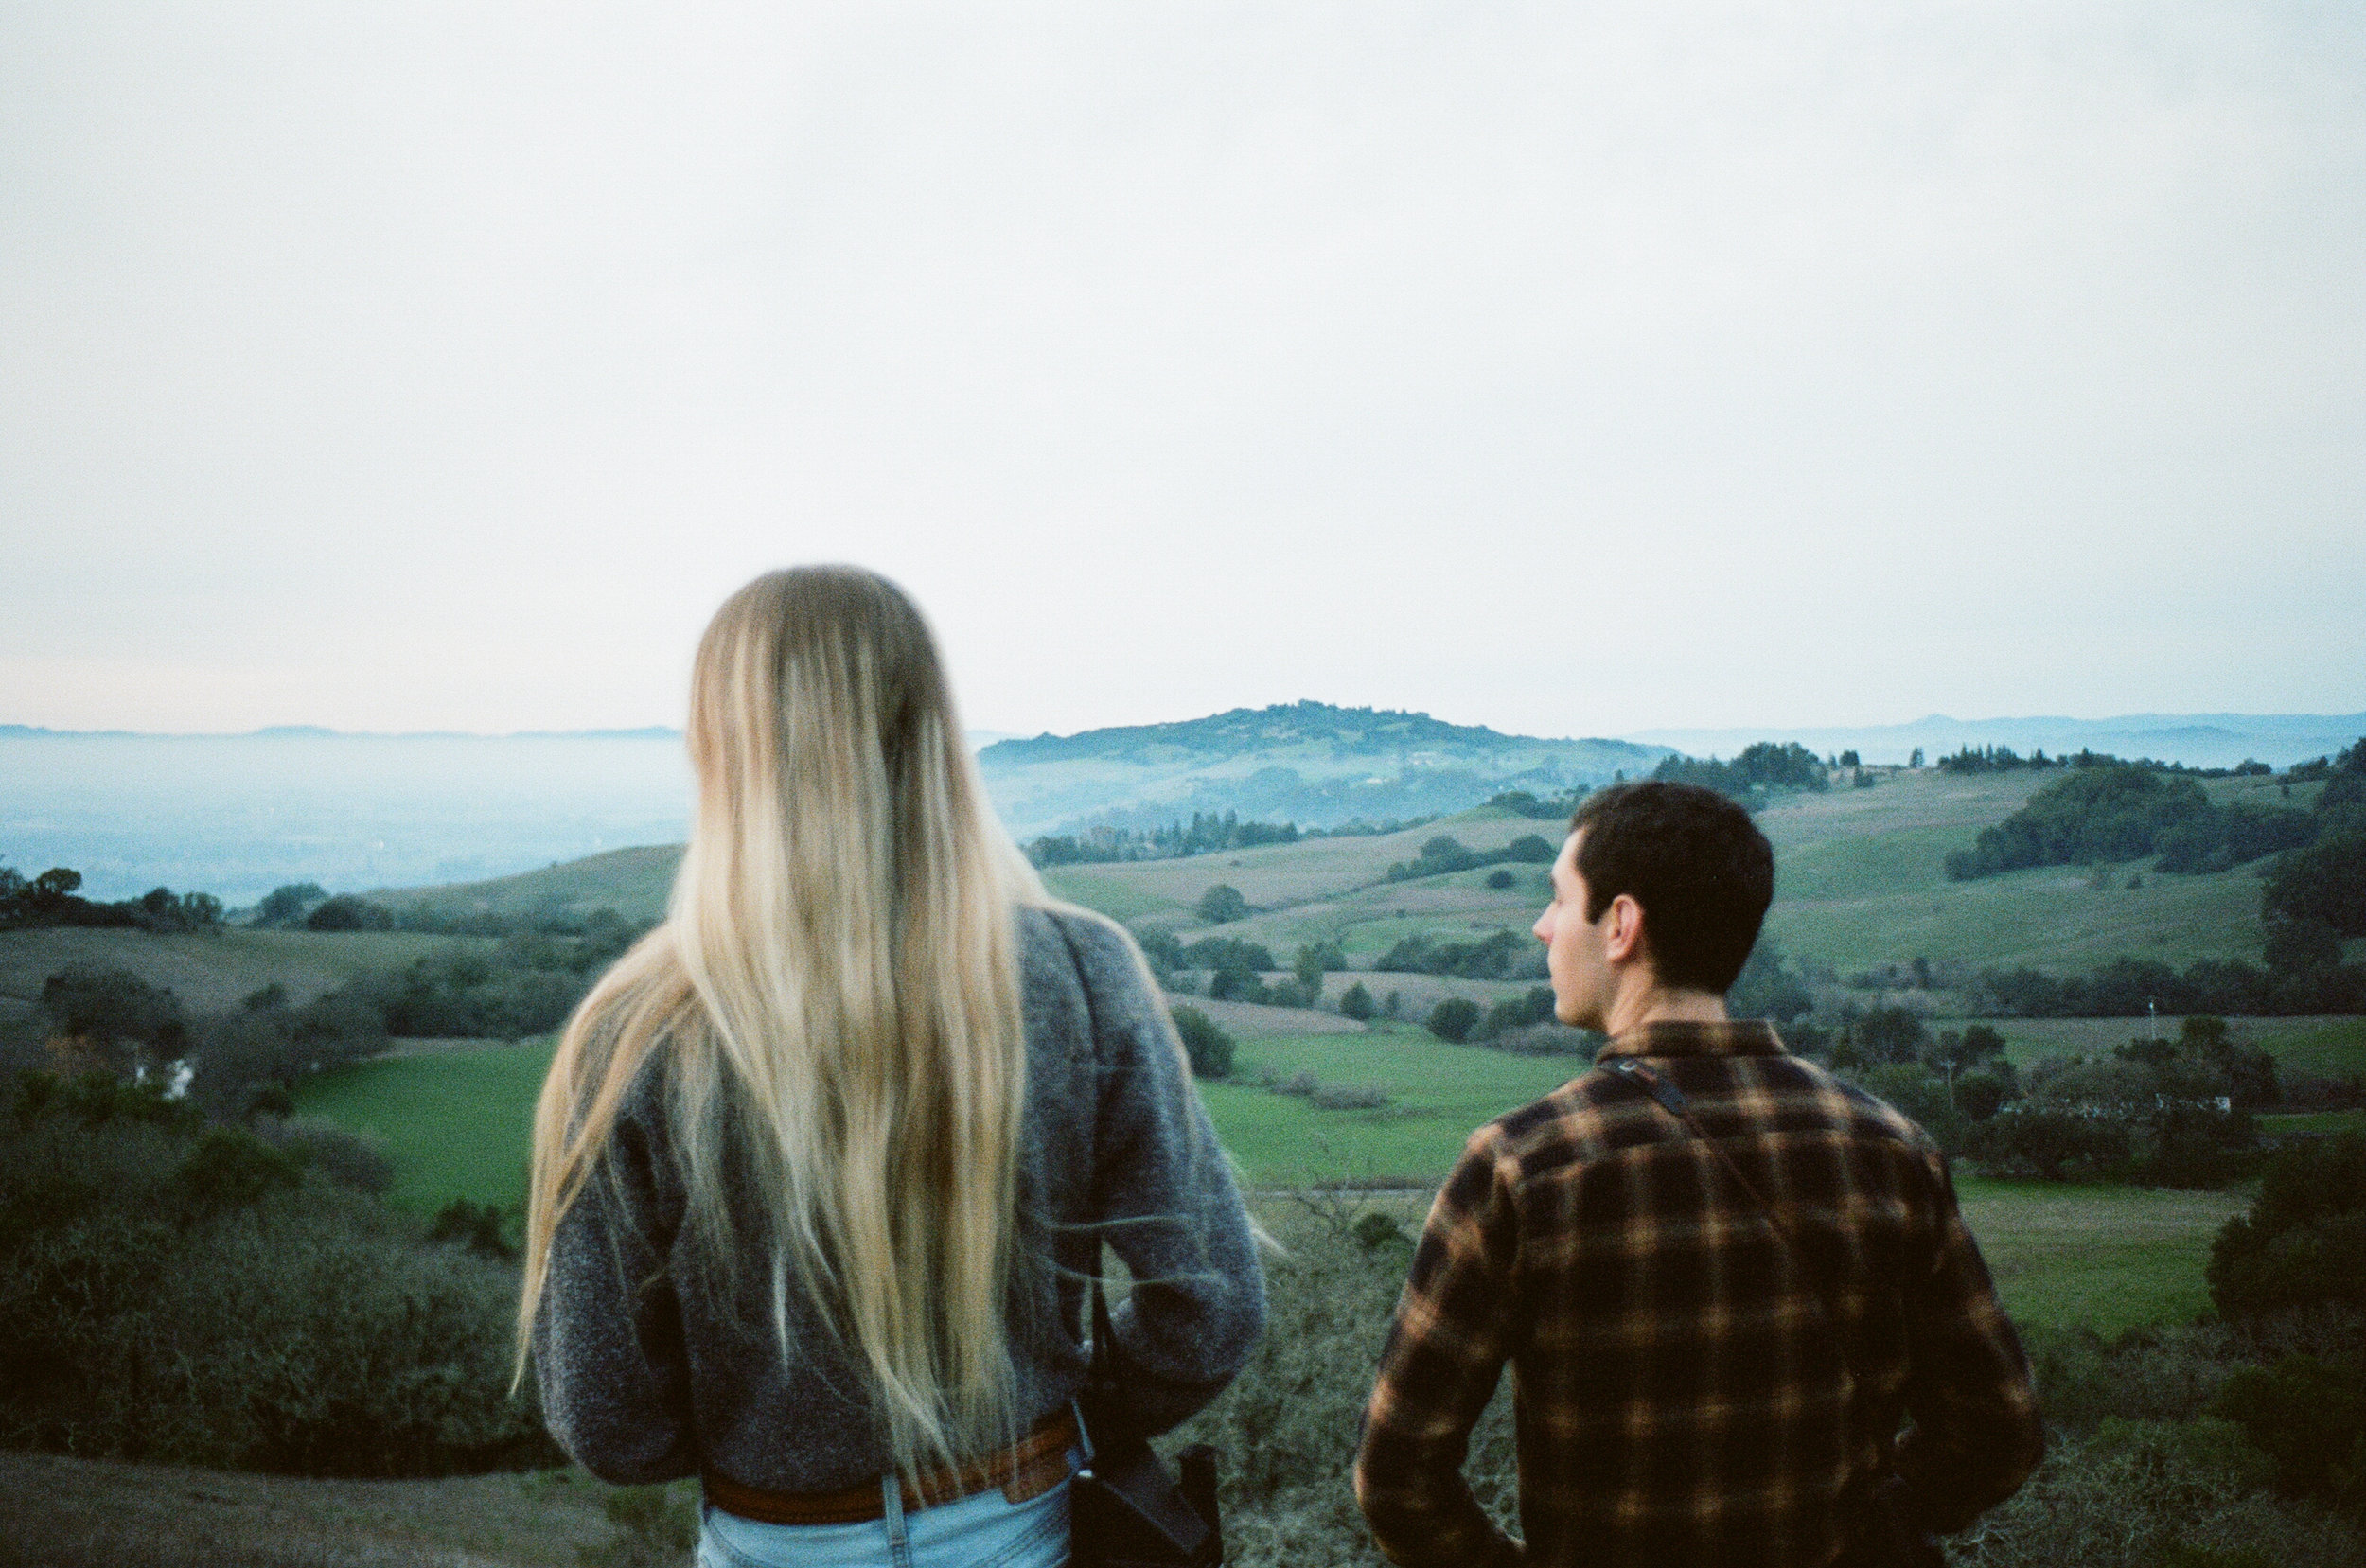 hannah&cole-california-film-jan2019-peytoncurry-000098780020.jpg